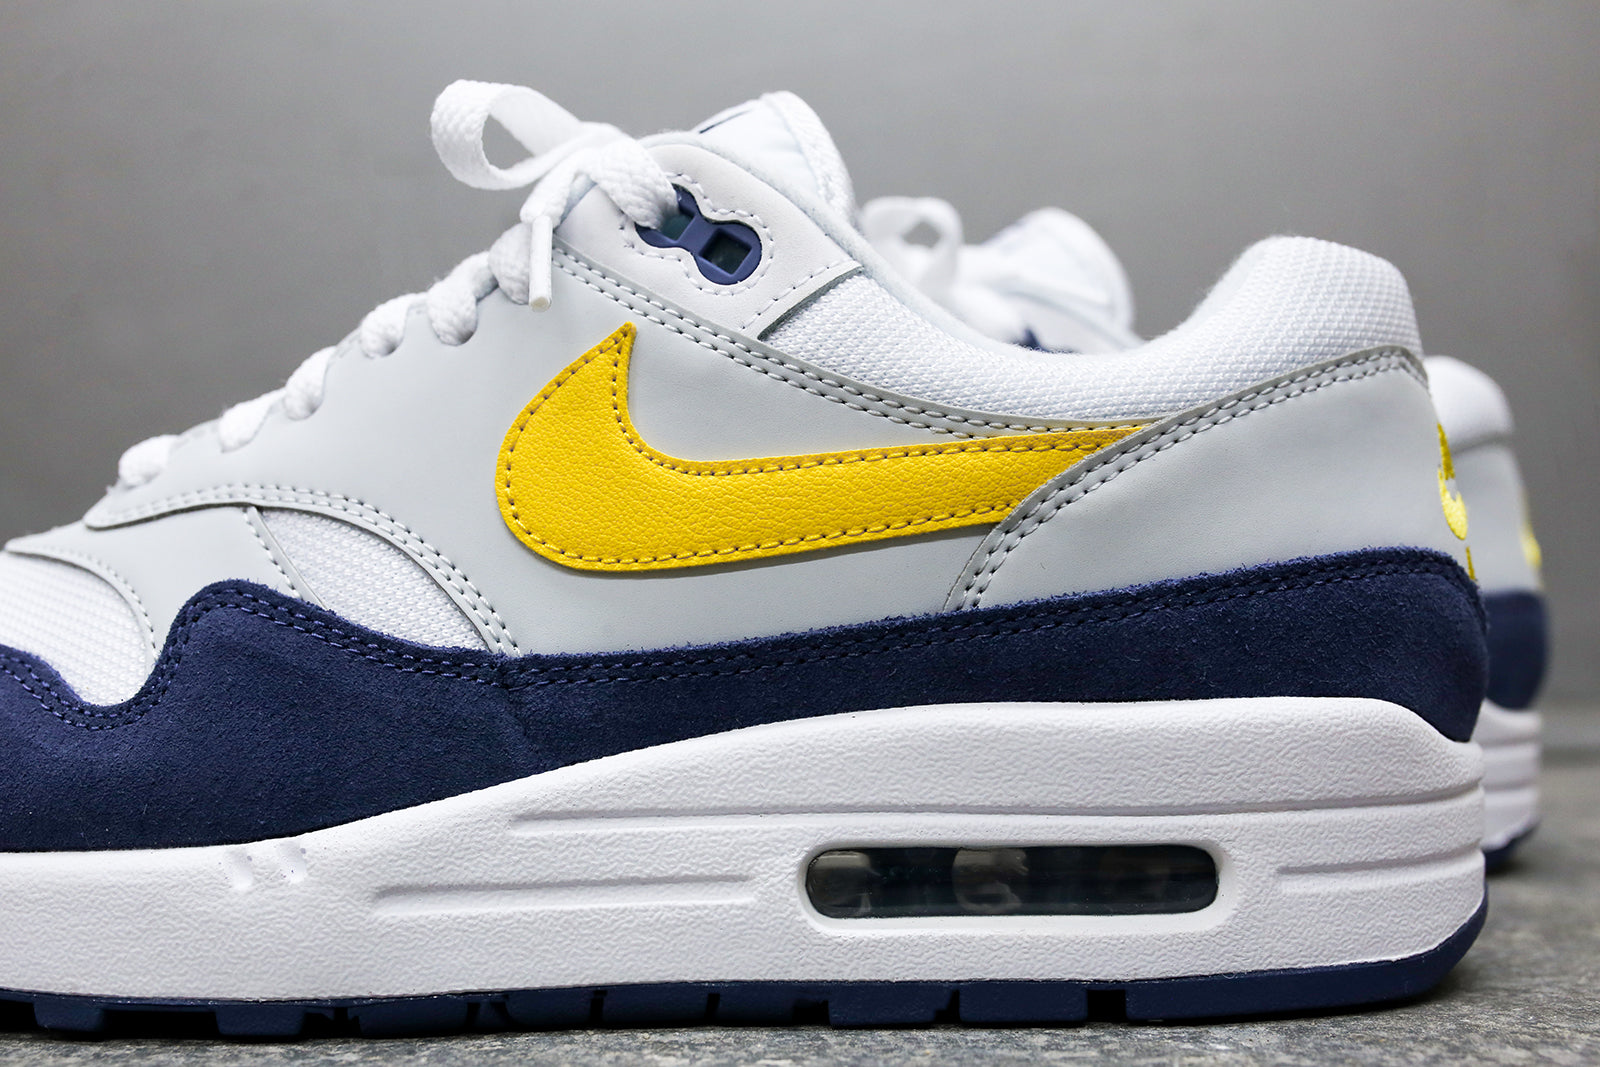 00325f07439b Nike Air Max 1 - White   Yellow   Blue. May 01